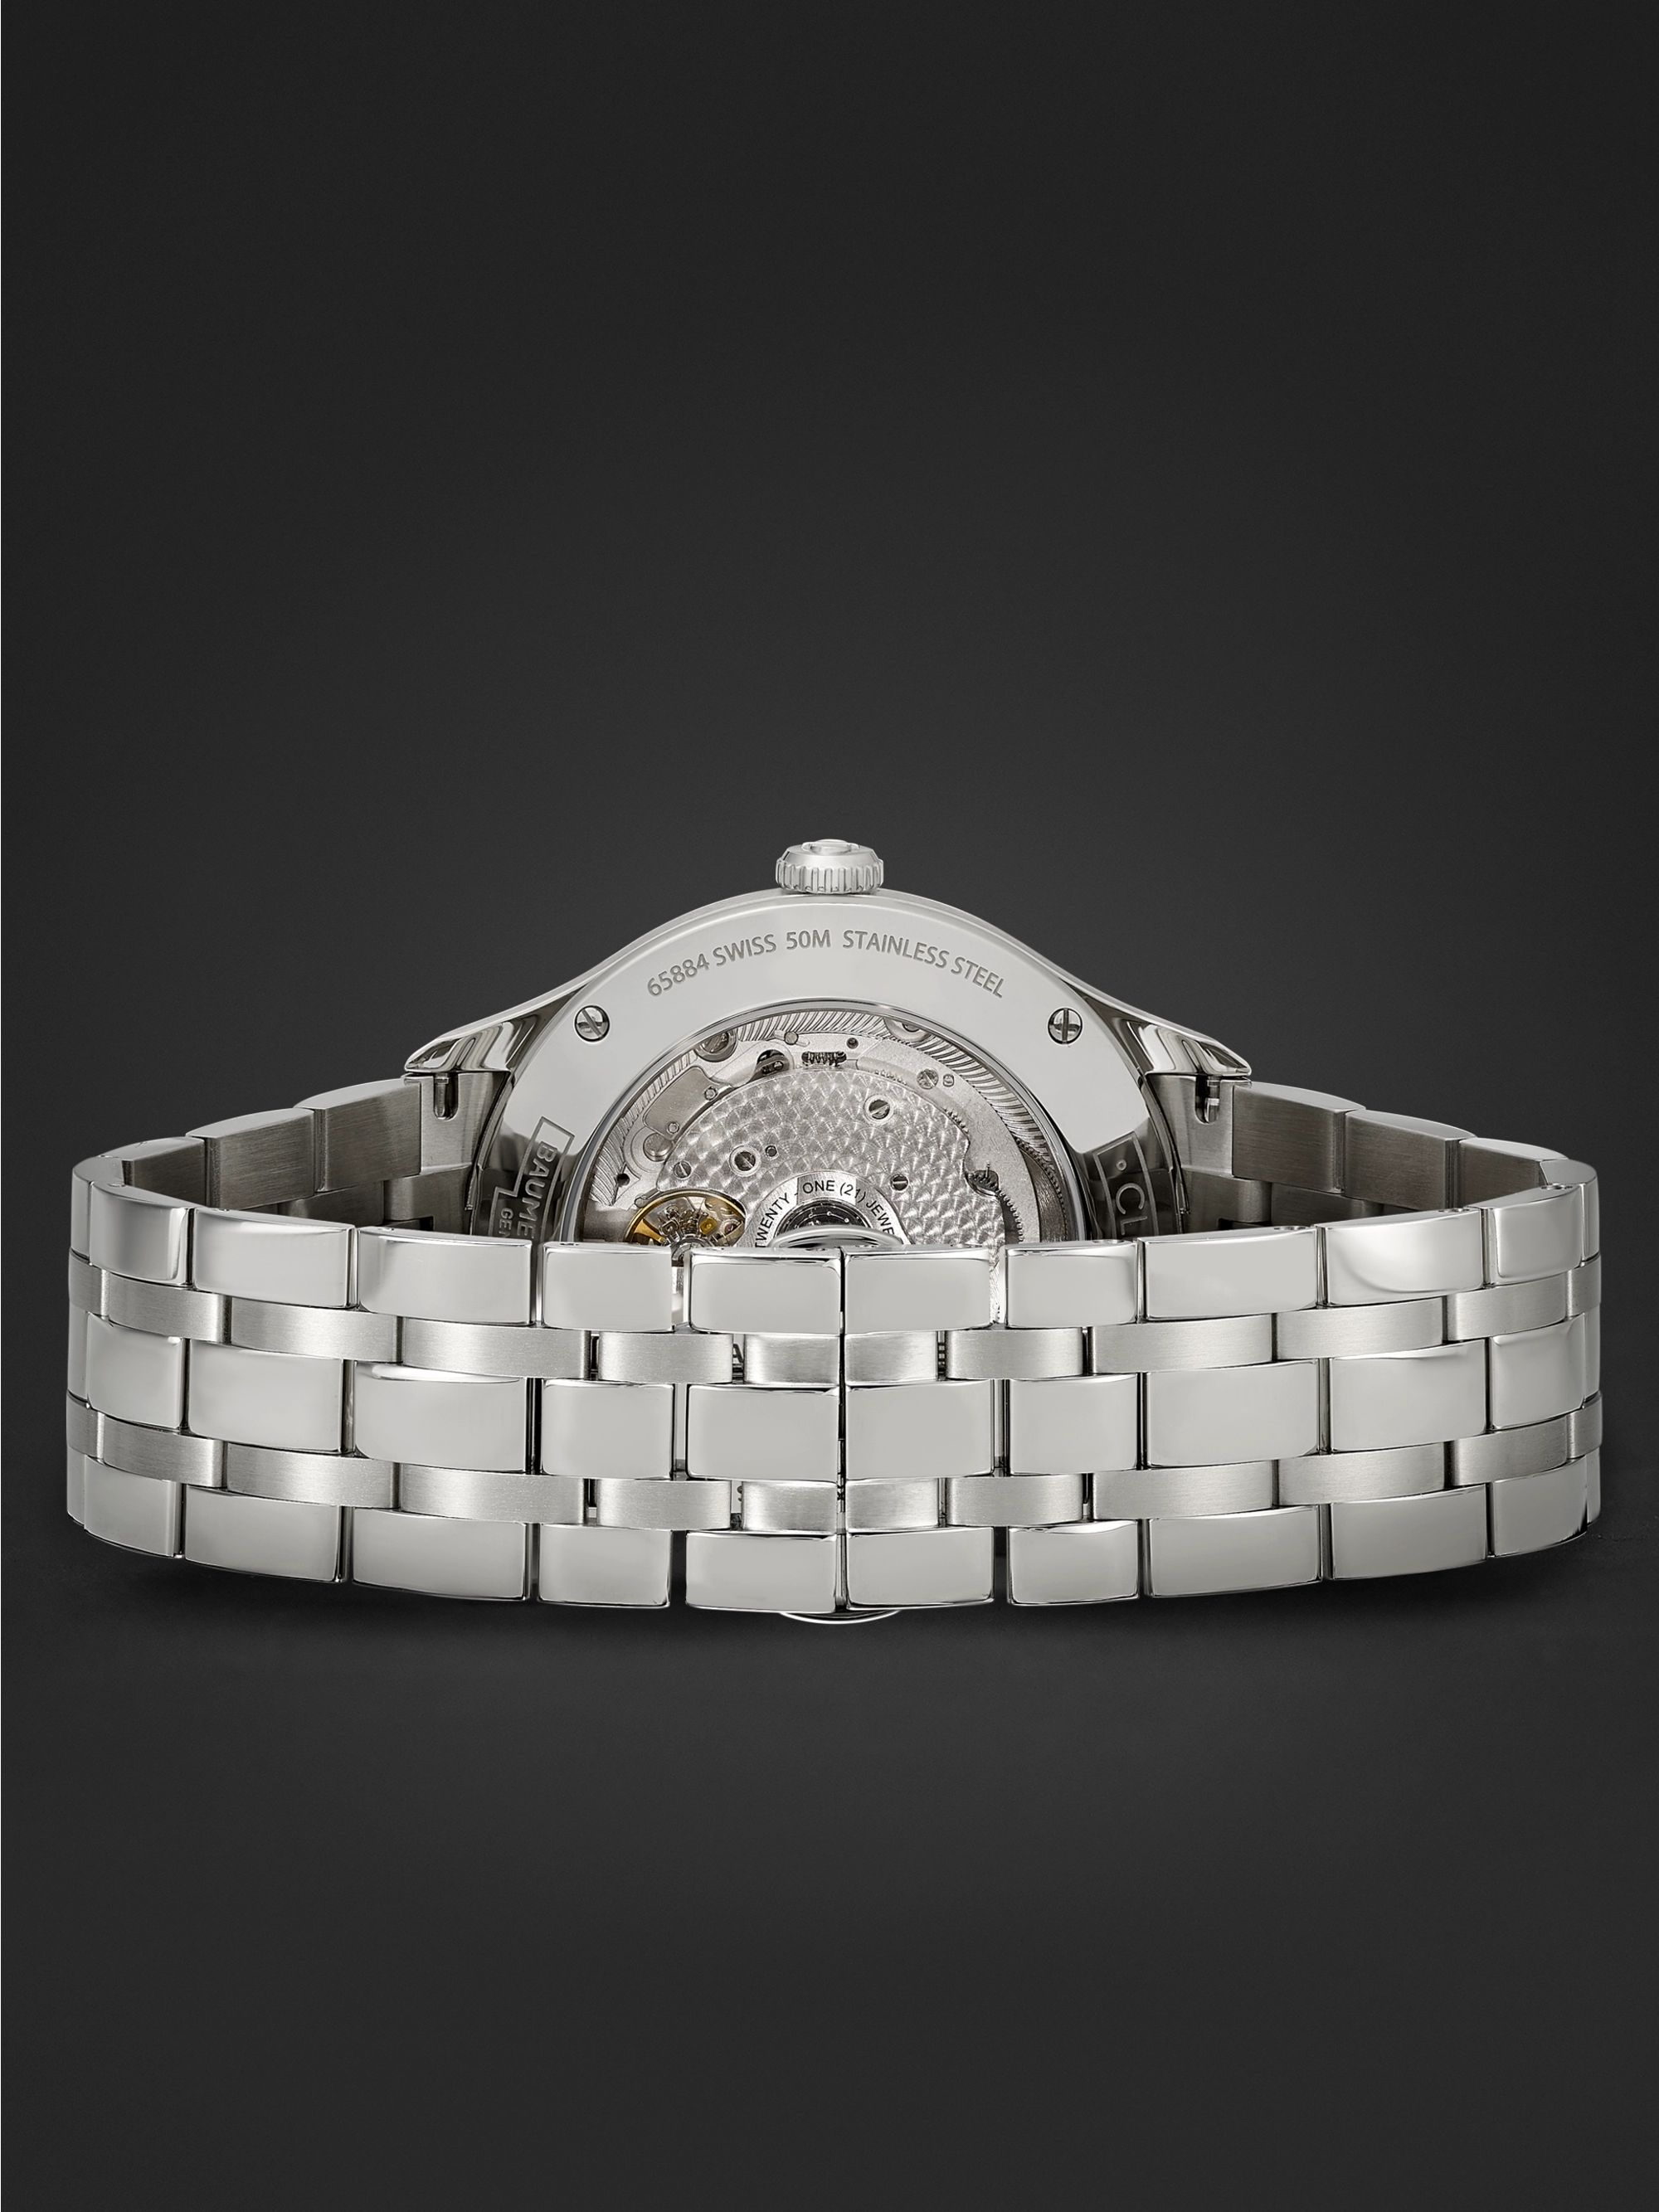 Baume & Mercier Clifton Baumatic Automatic Chronometer 40mm Stainless Steel Watch, Ref. No. M0A10505